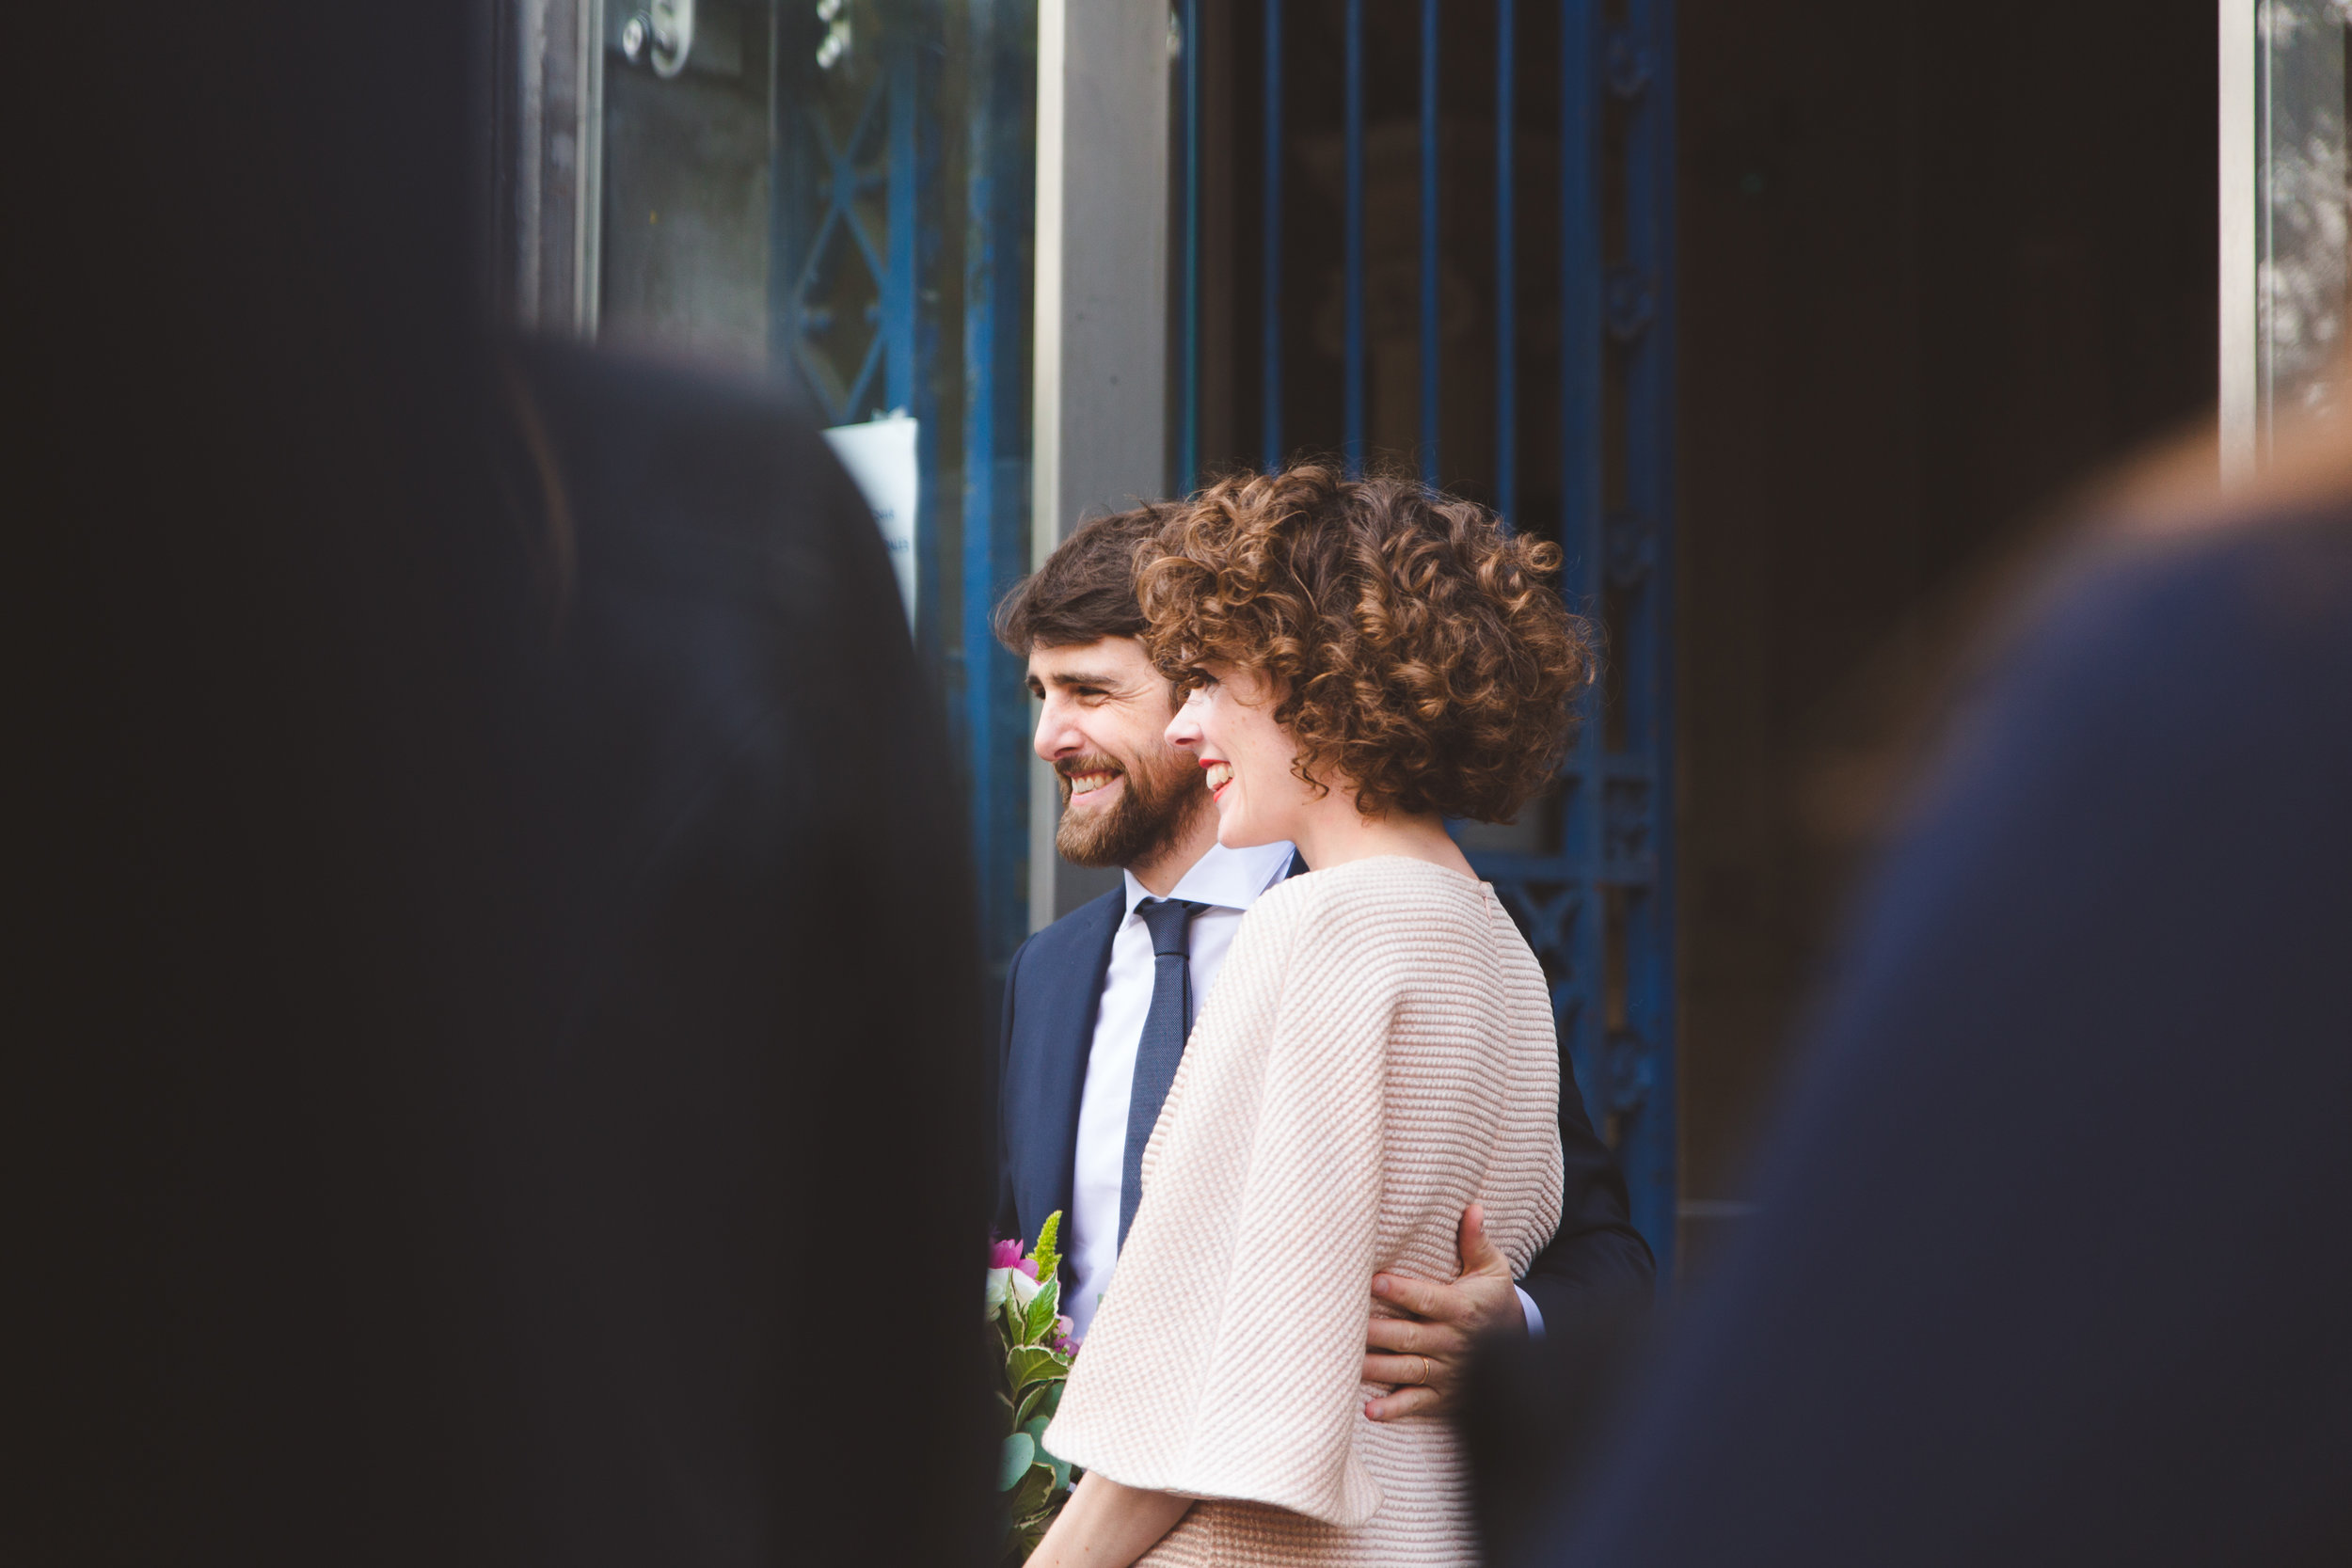 Emma&Nico_WeddingParis_by_UlaBlocksage-118.jpg